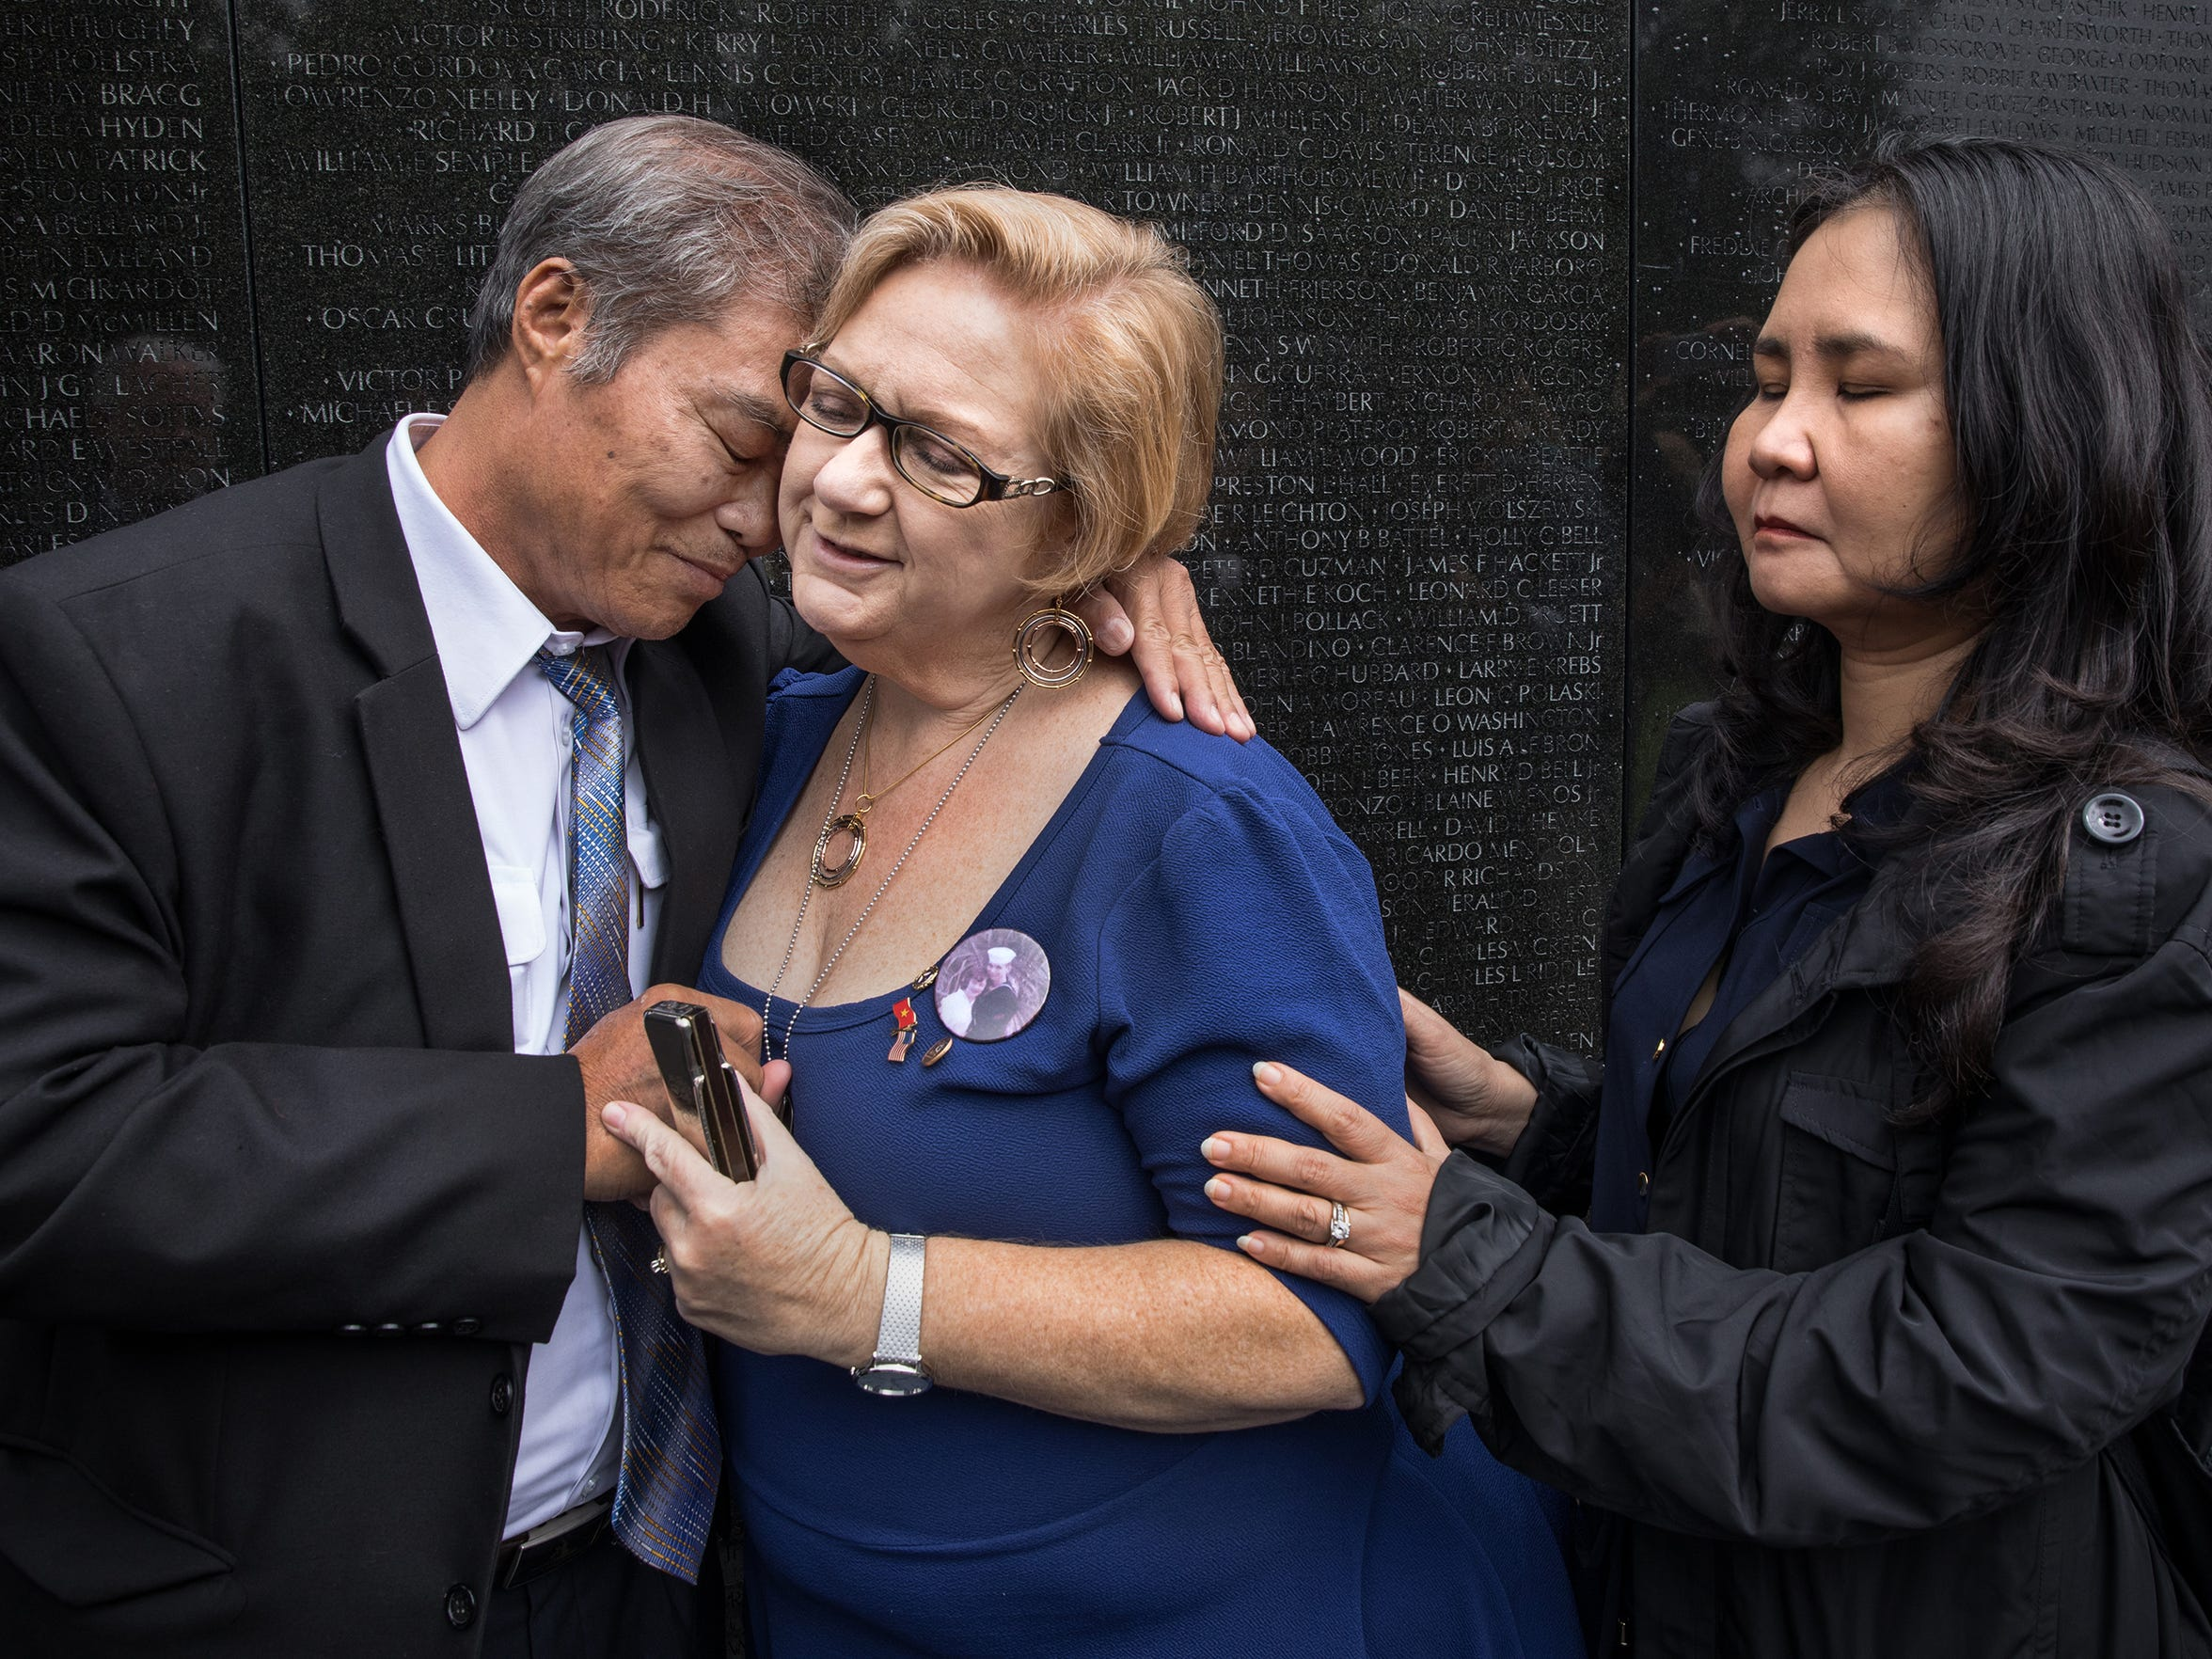 People whose parents died fighting on opposing sides in the Vietnam War held a ceremony Thursday at the Vietnam Veterans Memorial. Vu Ngoc Xiem, left, whose father was killed in an air raid, hugged Susan Mitchell-Mattera, whose father died in a helicopter shoot-down. Nguyen Thi Hong Diem, at right, lost both parents, who were members of the Viet Cong.